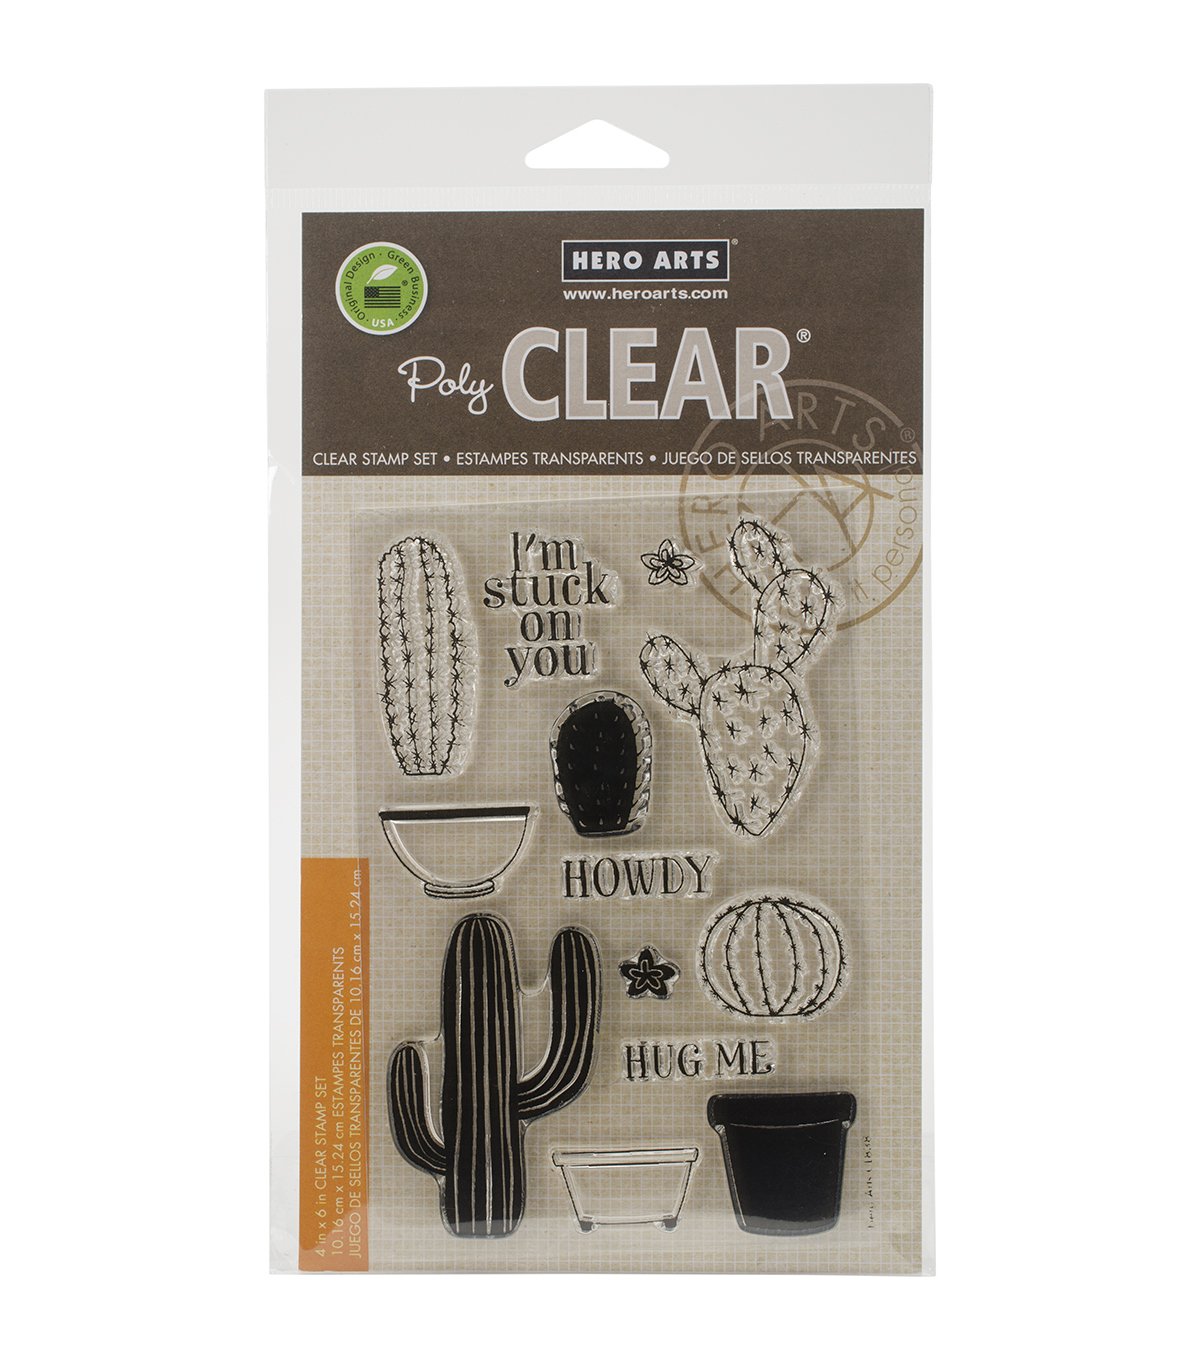 Hero Arts Stamp Your Own Cactus Clear Stamps